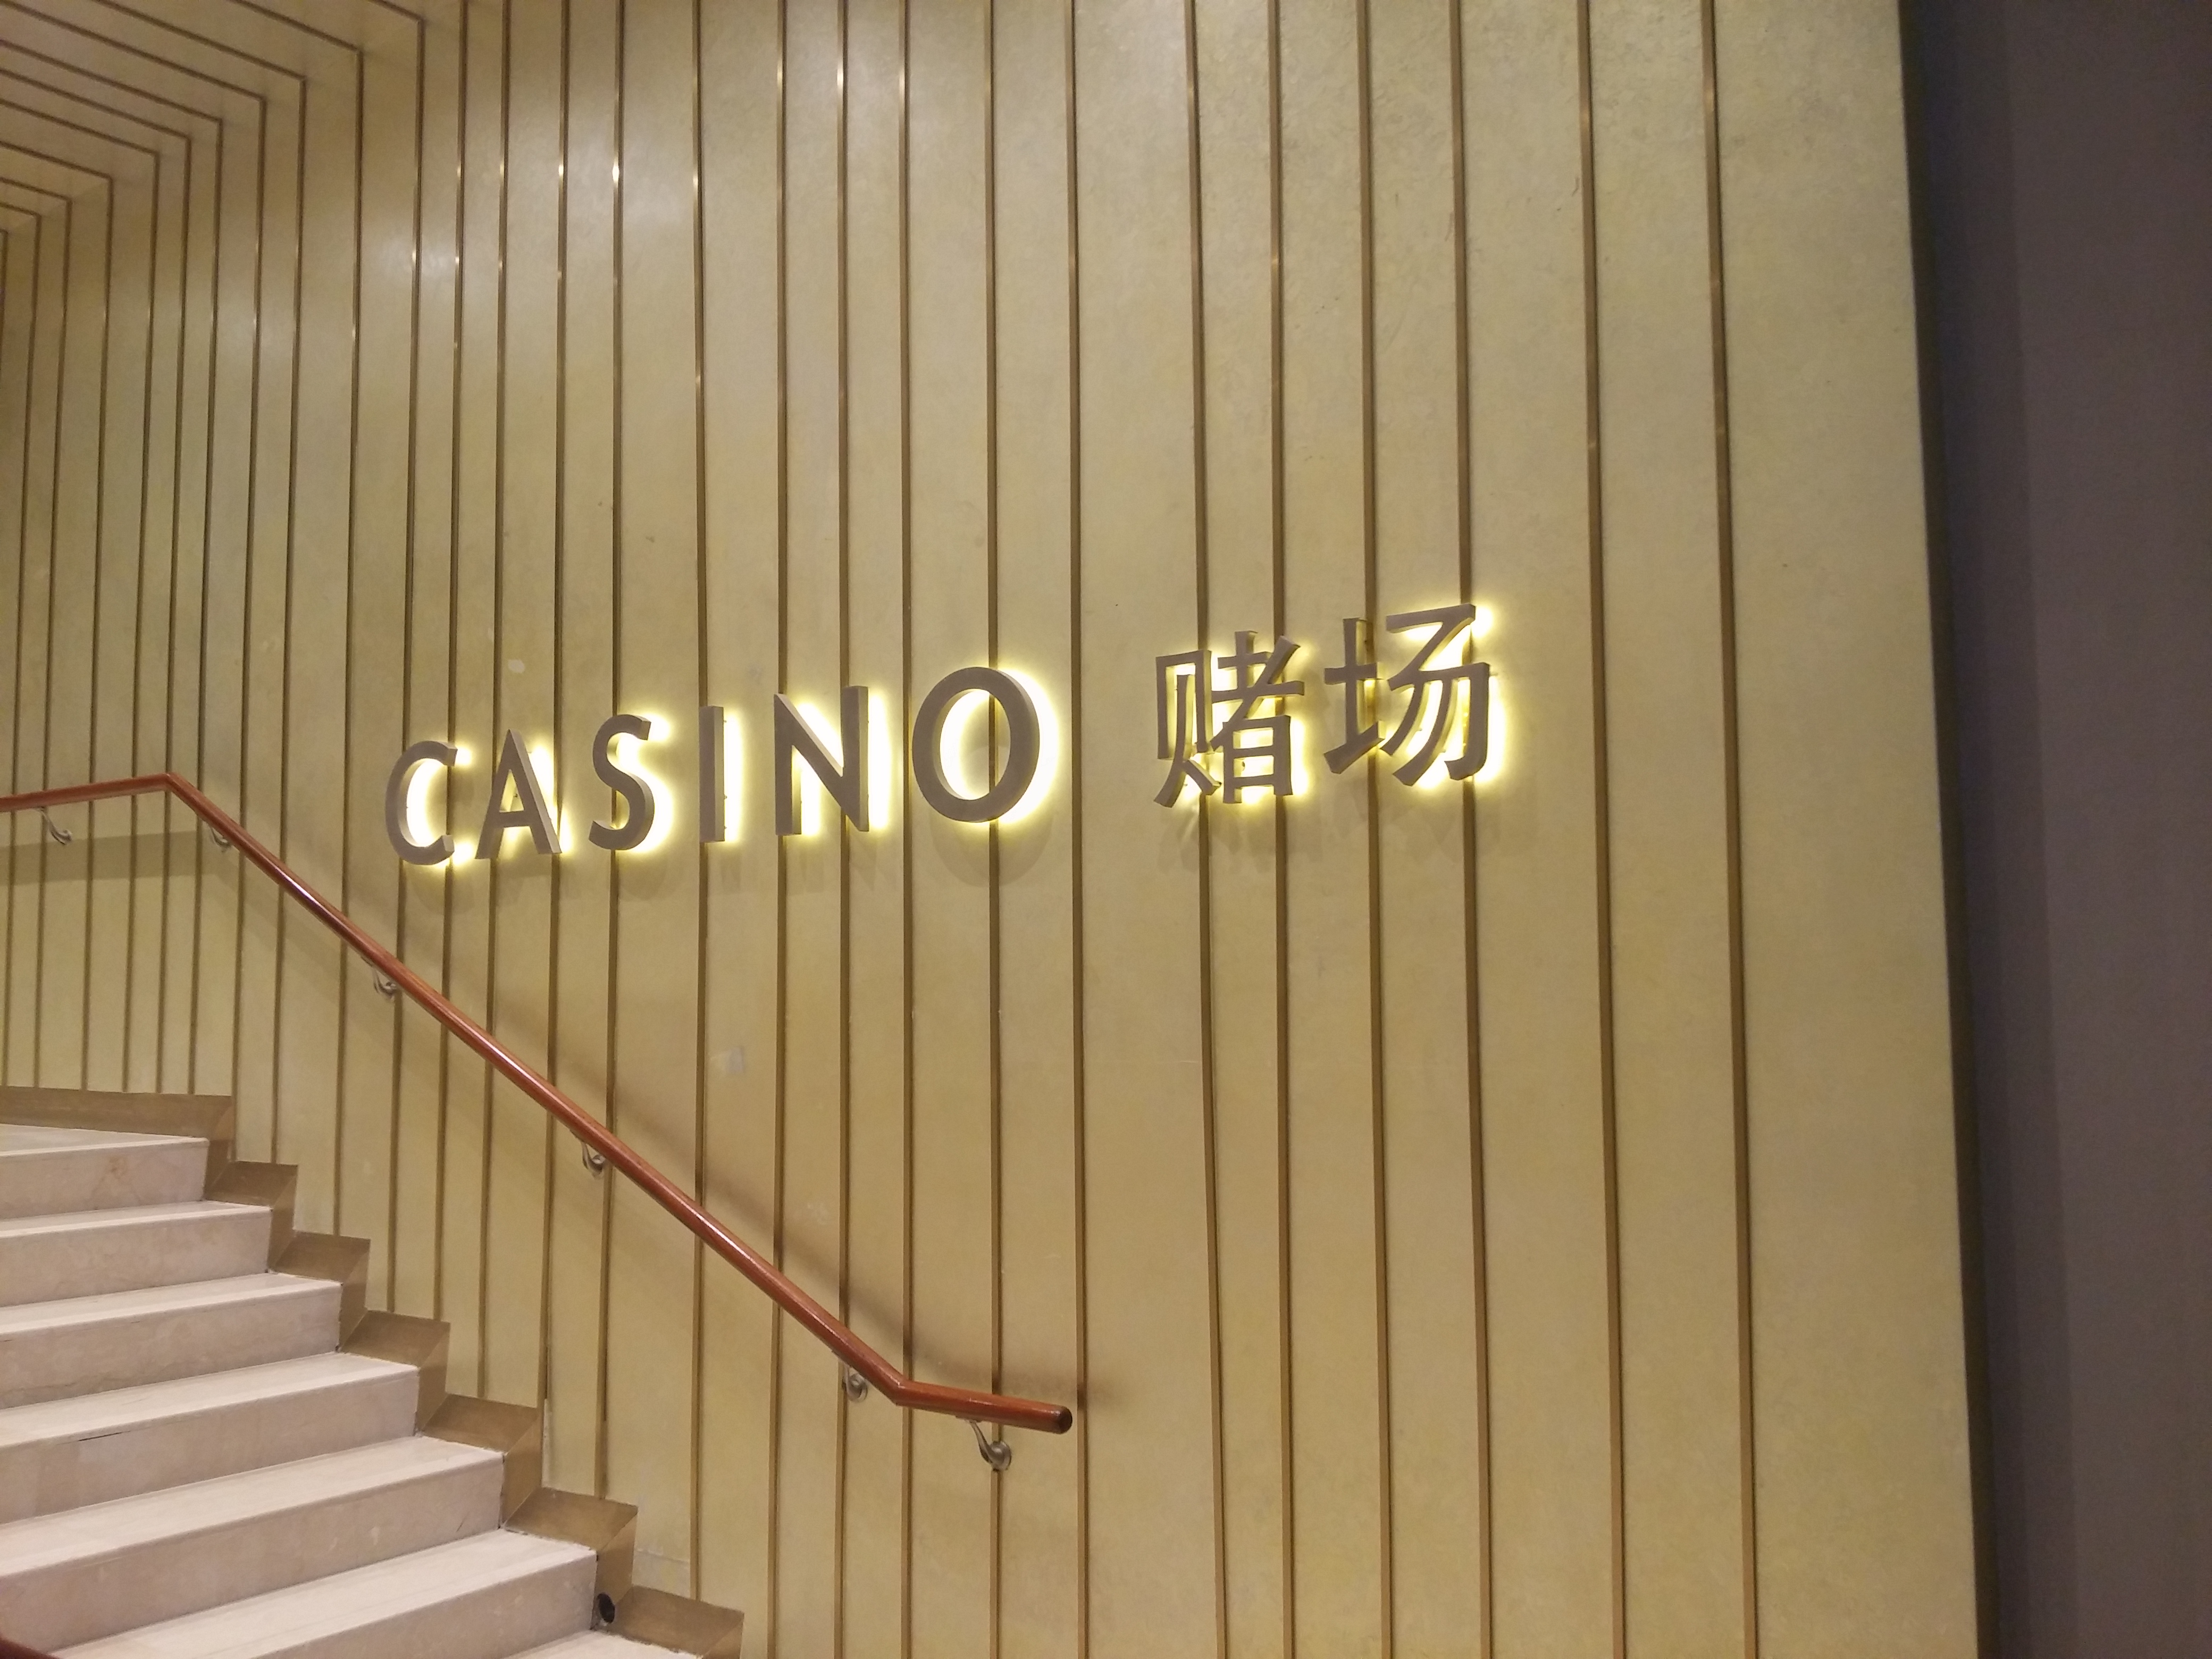 Mbs casino entry age